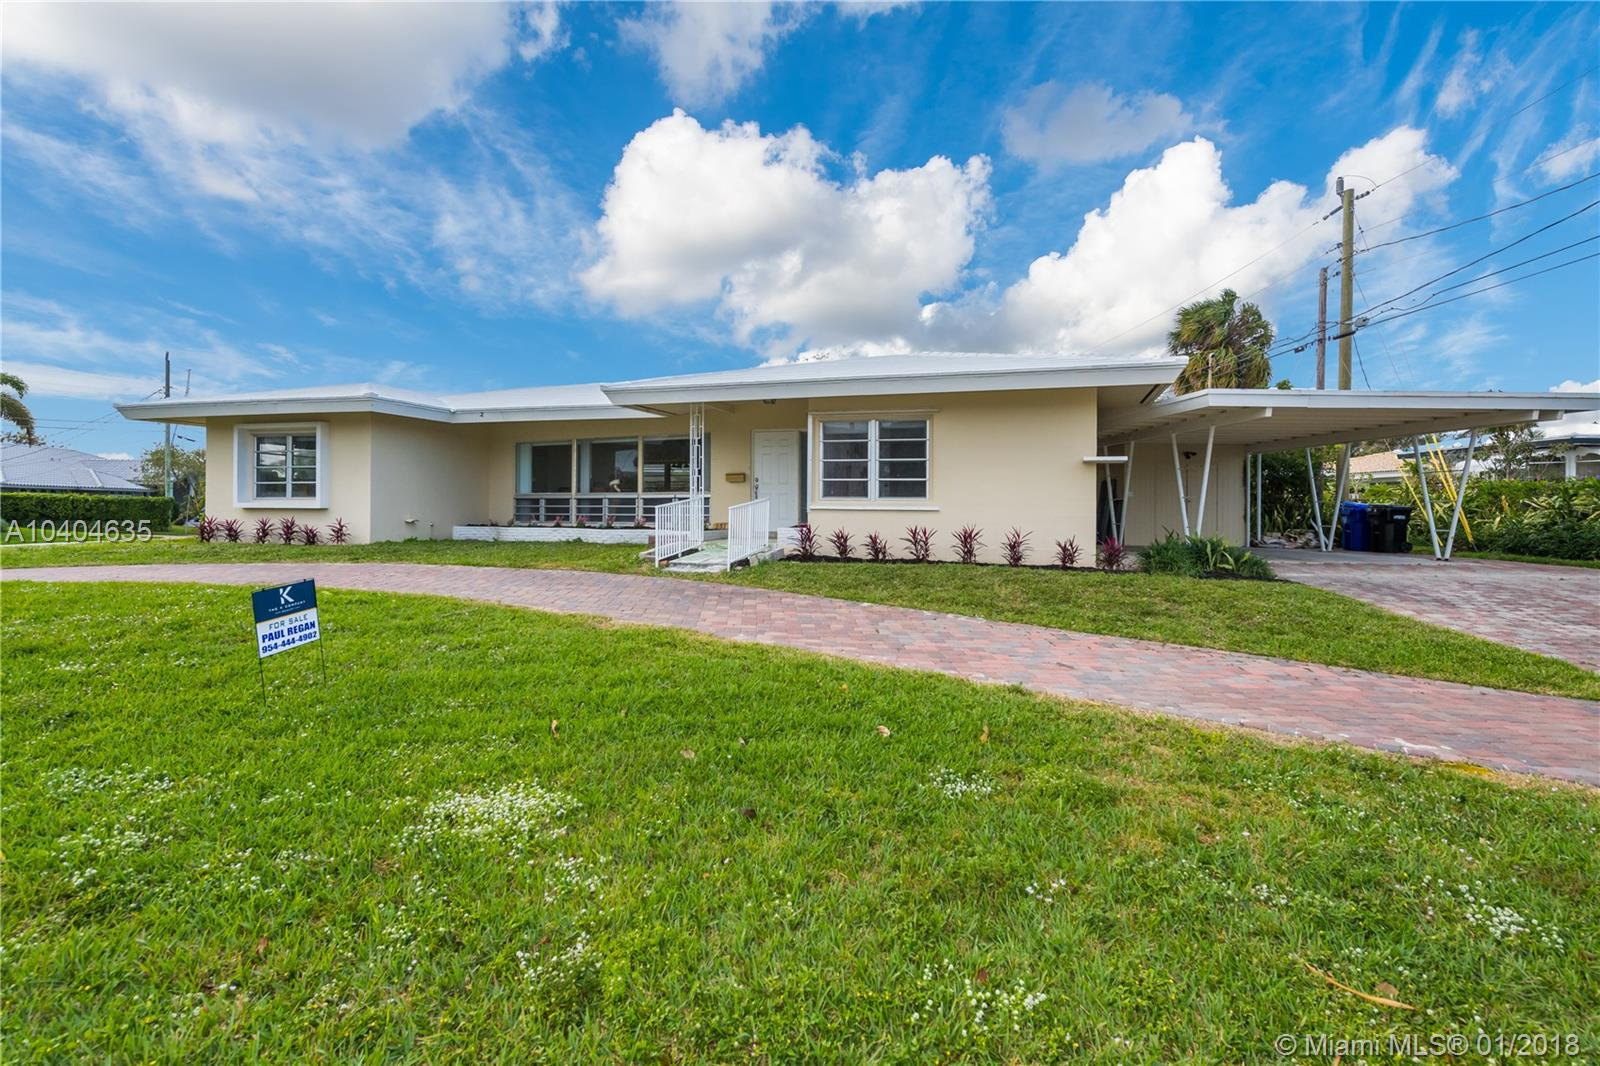 251 S Tradewinds Ave, Lauderdale By The Sea , FL 33308